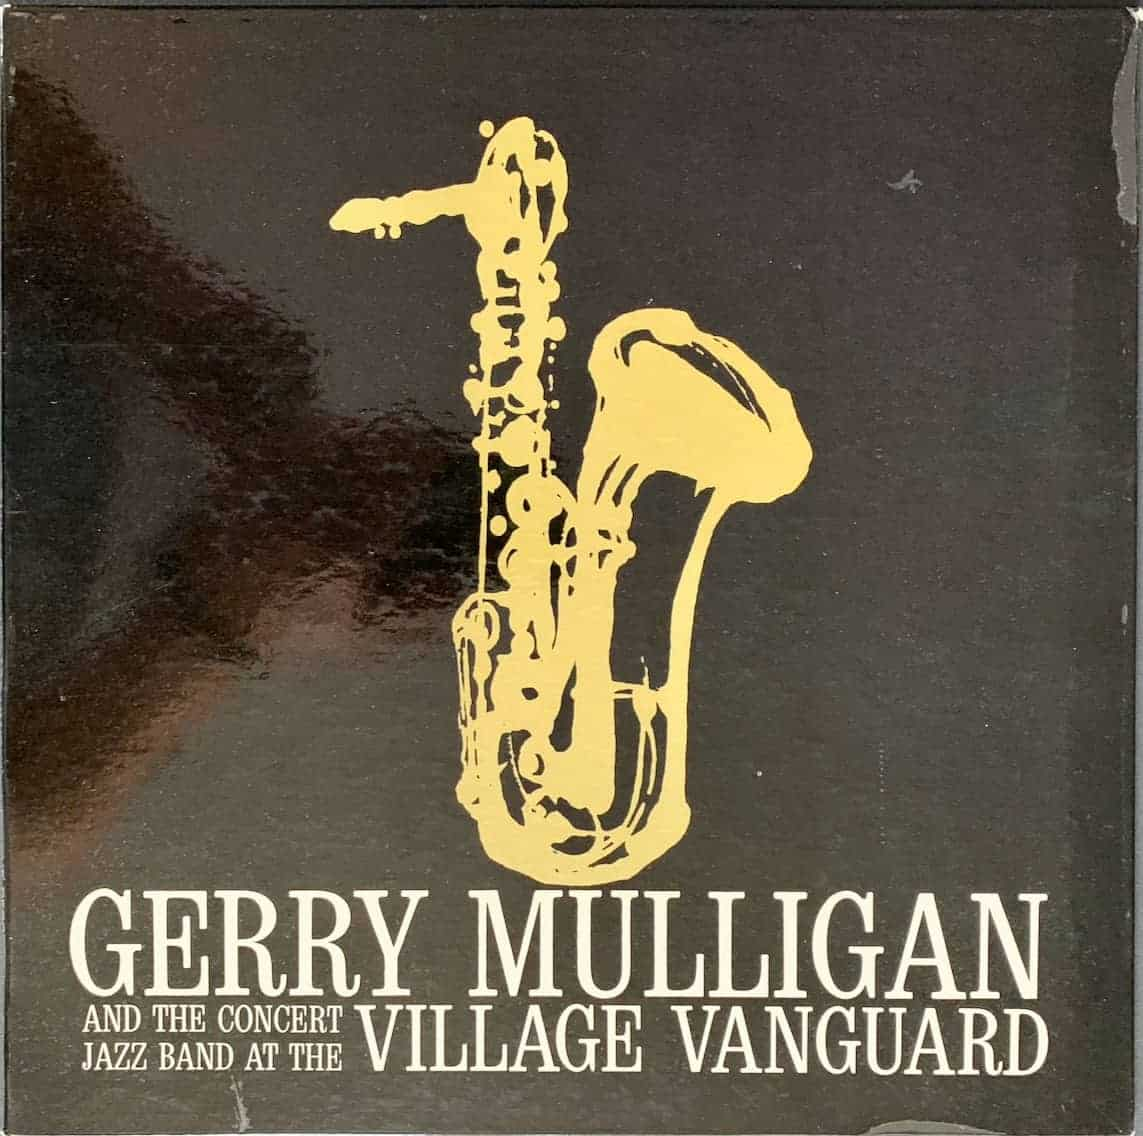 Gerry Mulligan And The Concert Jazz Band At The Village Vanguard Vinyl Pussycat Records